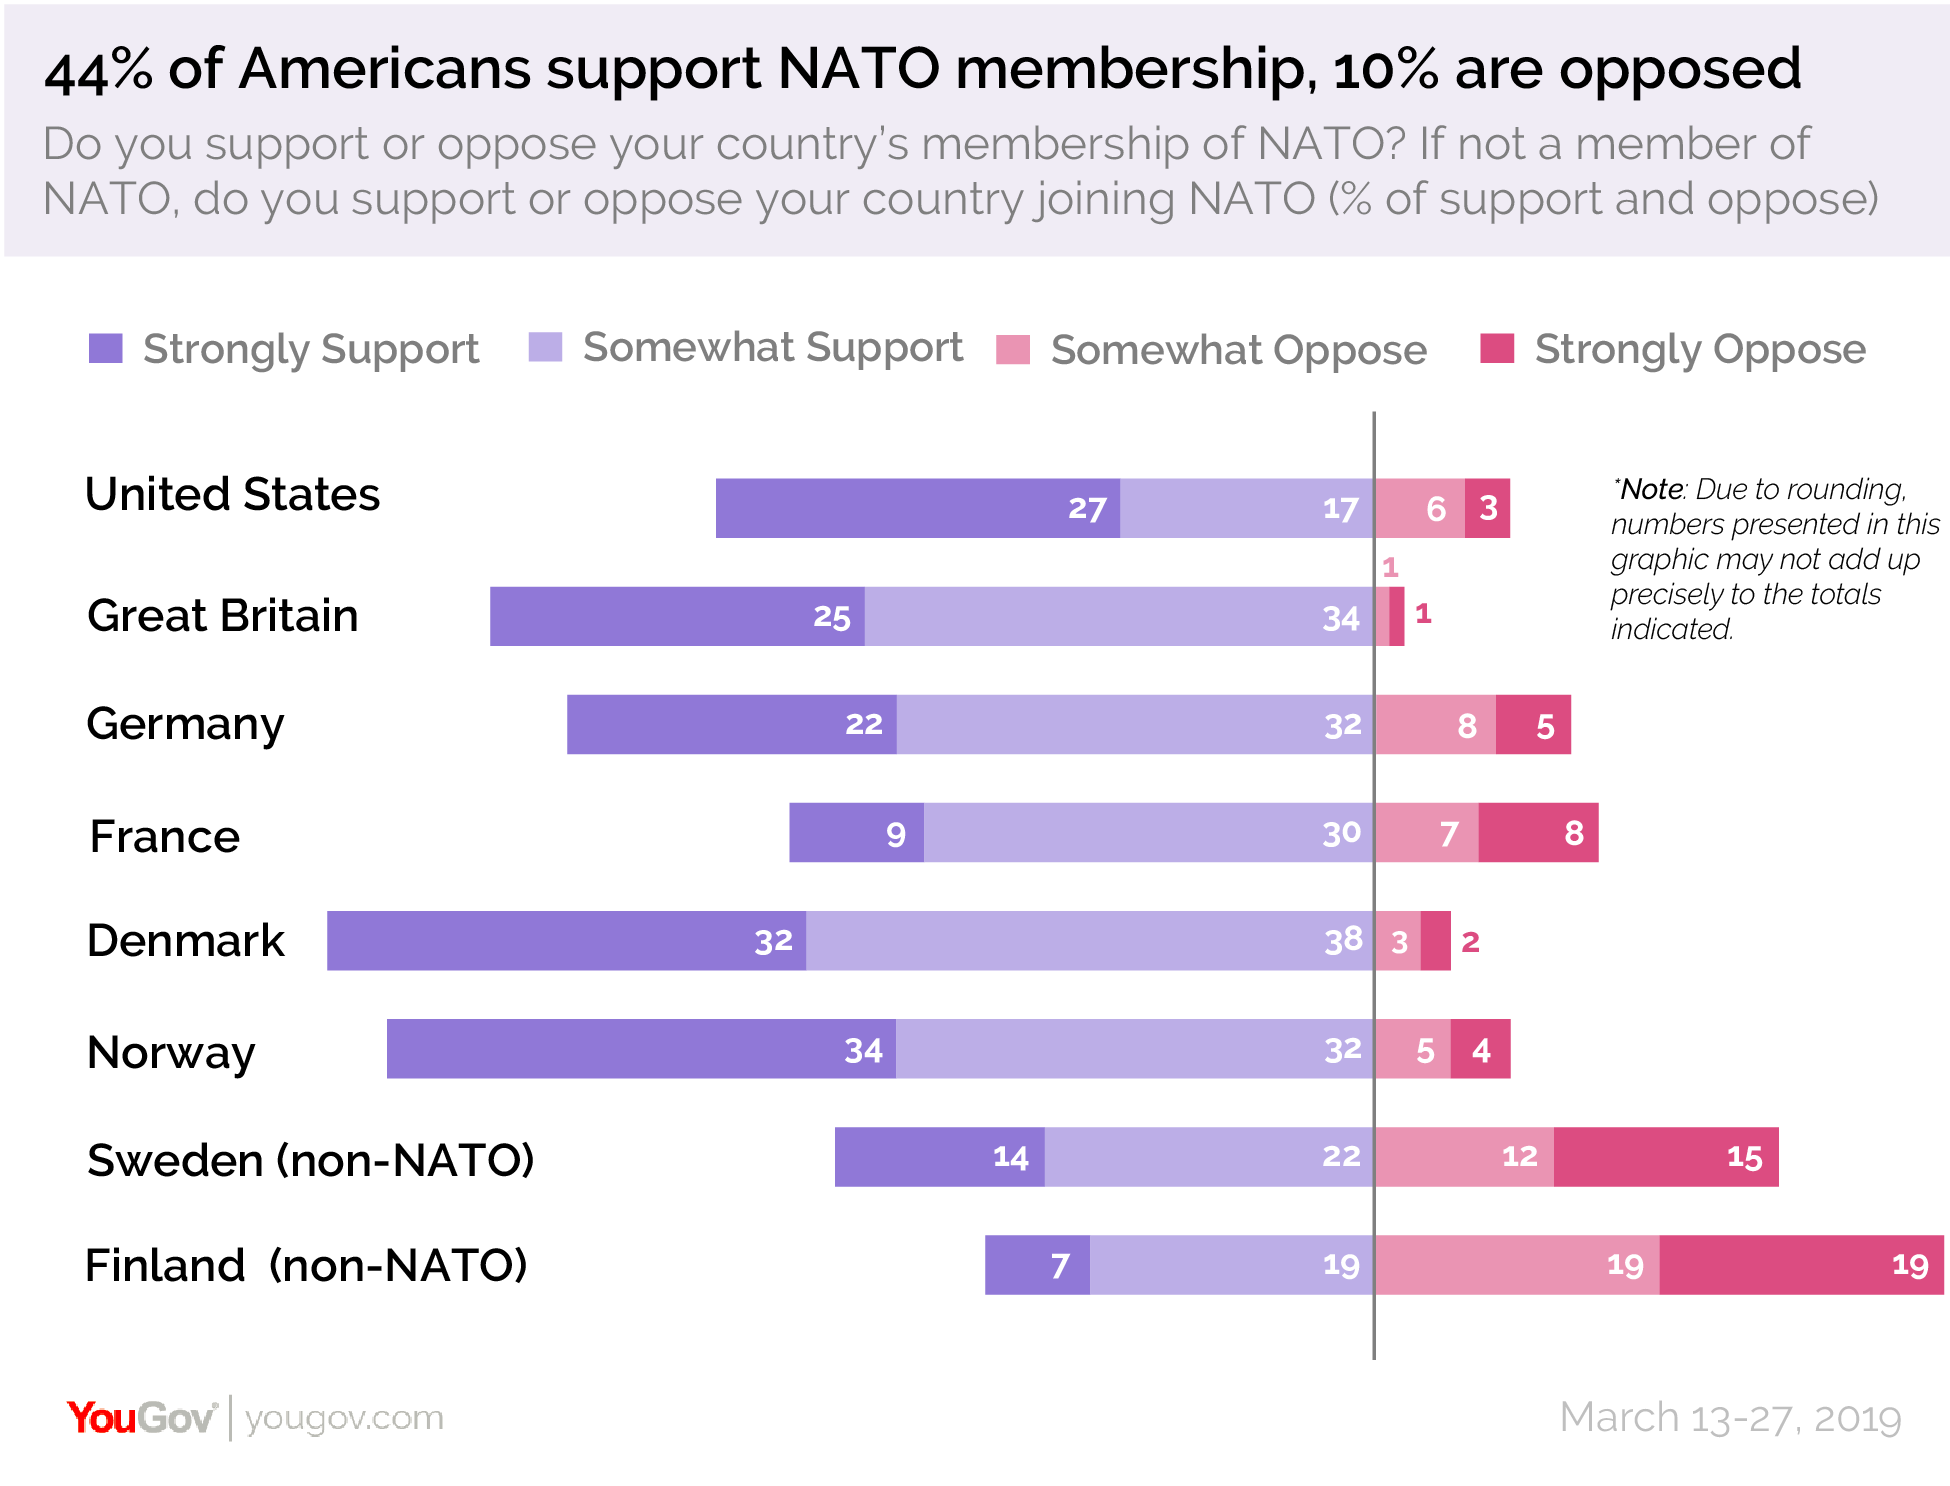 44% of Americans support NATO membership, 10% are opposed